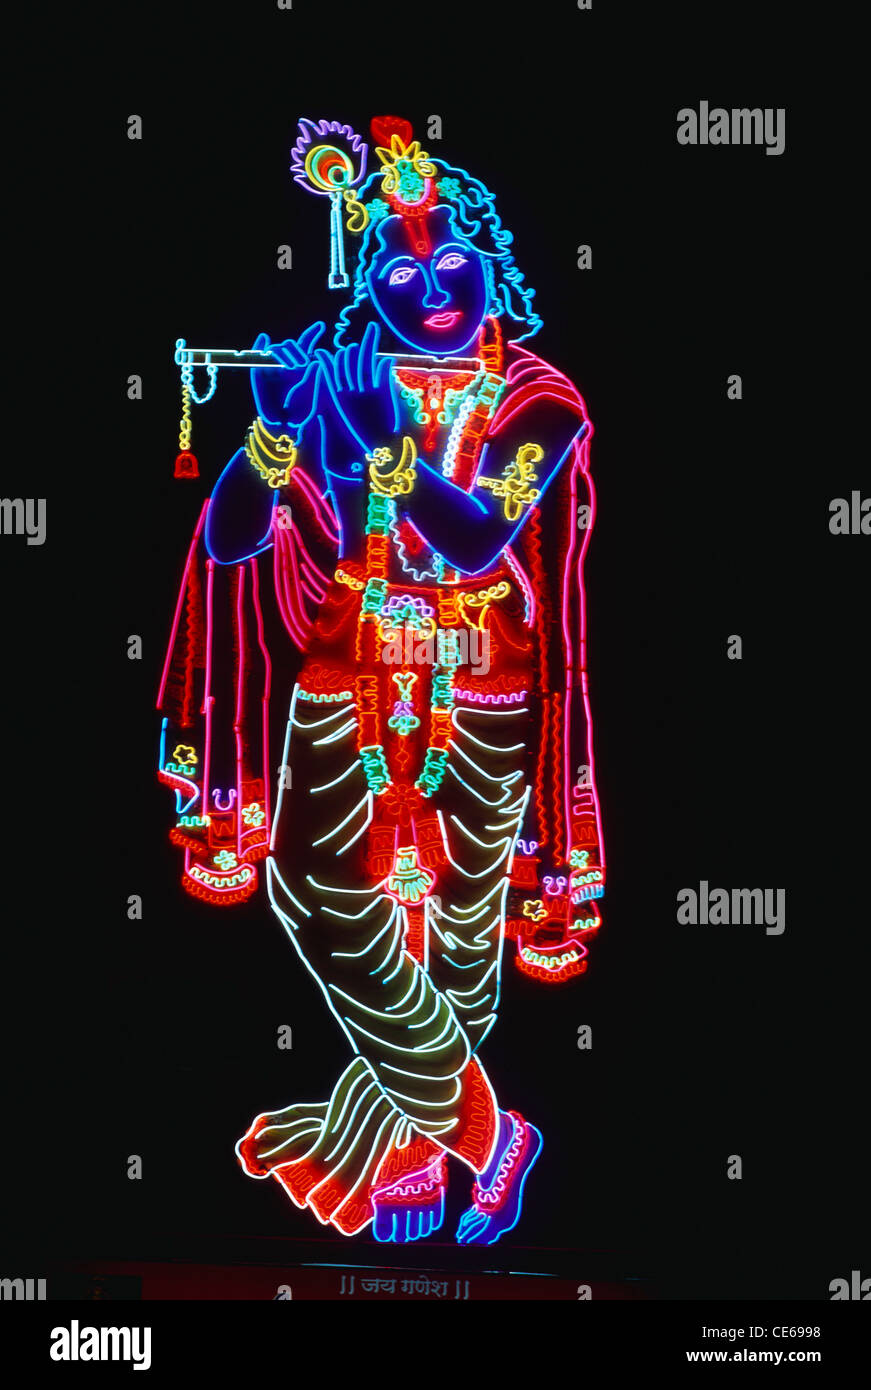 lord krishna playing flute made by colourful neon light pune maharashtra CE6998